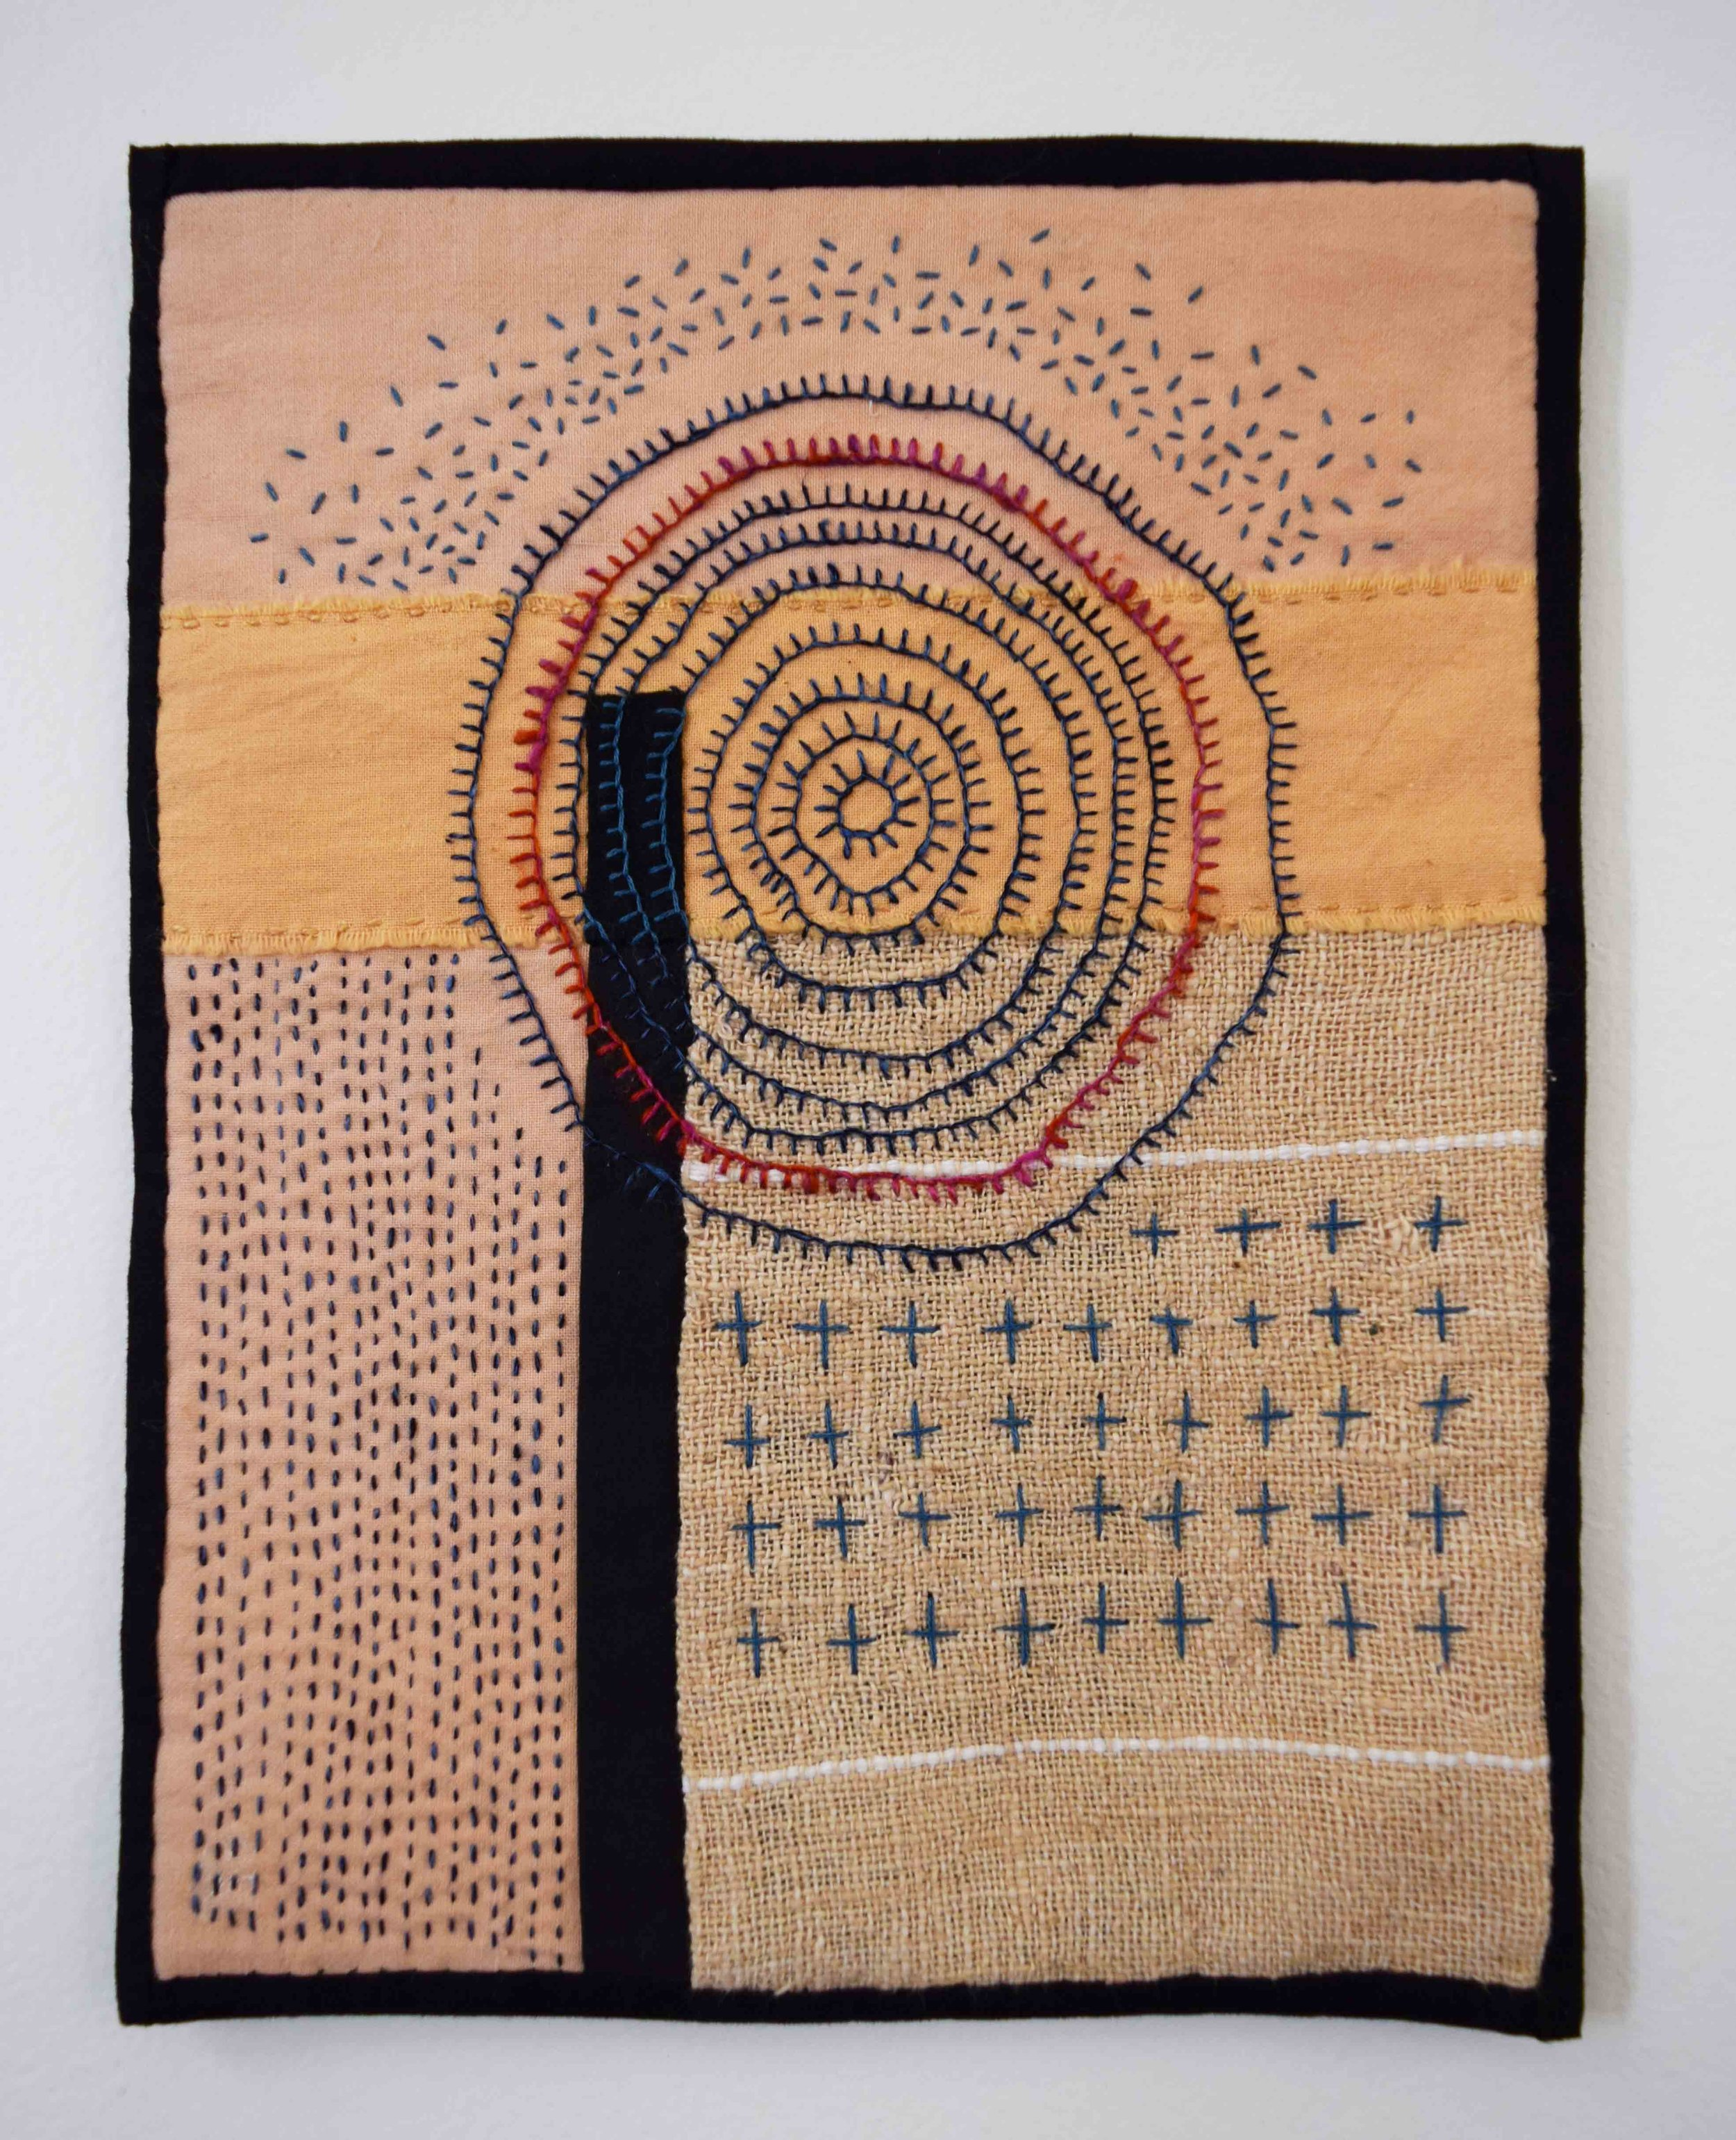 28. Anne Williams,  Untitled,  2018, hand stitched cotton and silk, 27 x 21 cm $155